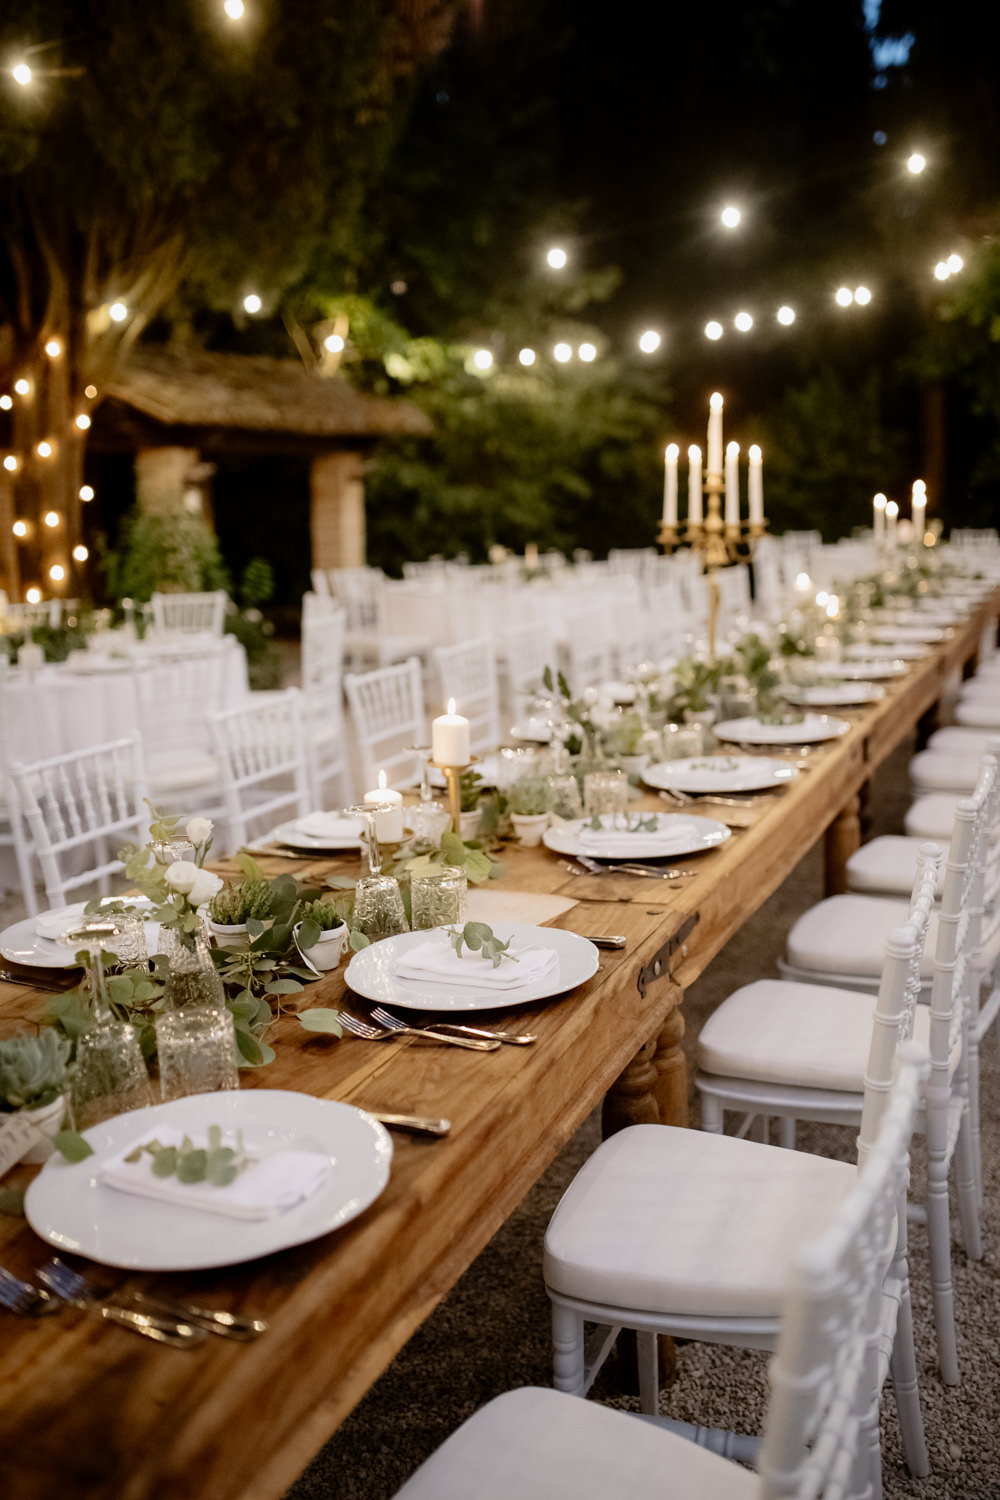 Table Tablescape Greenery Foliage Gold Cutlery Candles Place Setting Natural Italy Villa Wedding Flavia Eleonora Tullio